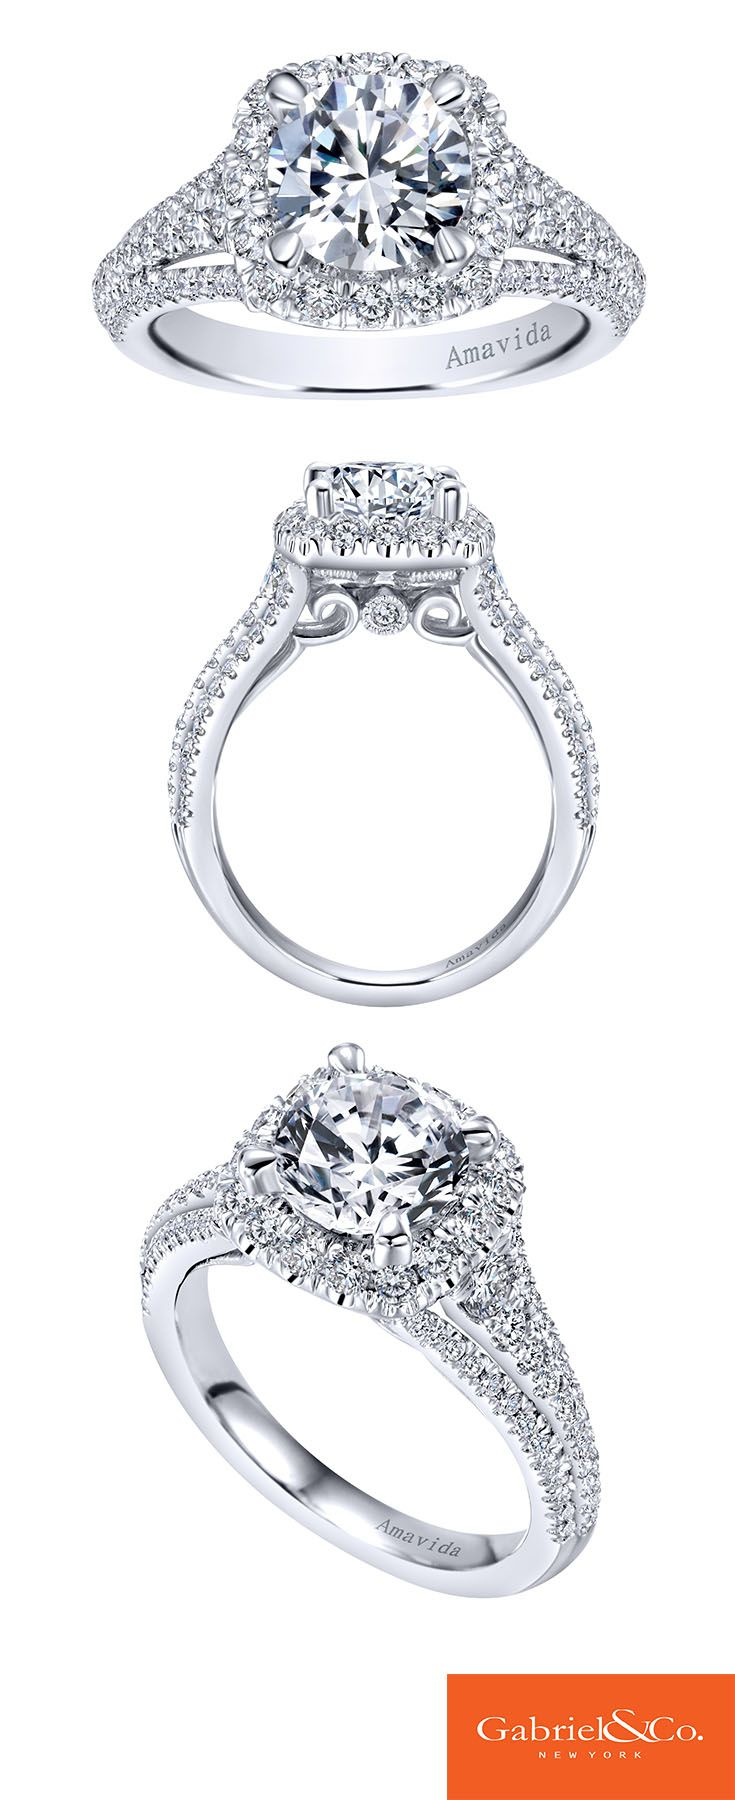 Gabriel & Co. - Voted #1 Most Preferred Bridal Brand. Take a closer look at our Amavida 18k White Gold Diamond Halo Engagement Ring.